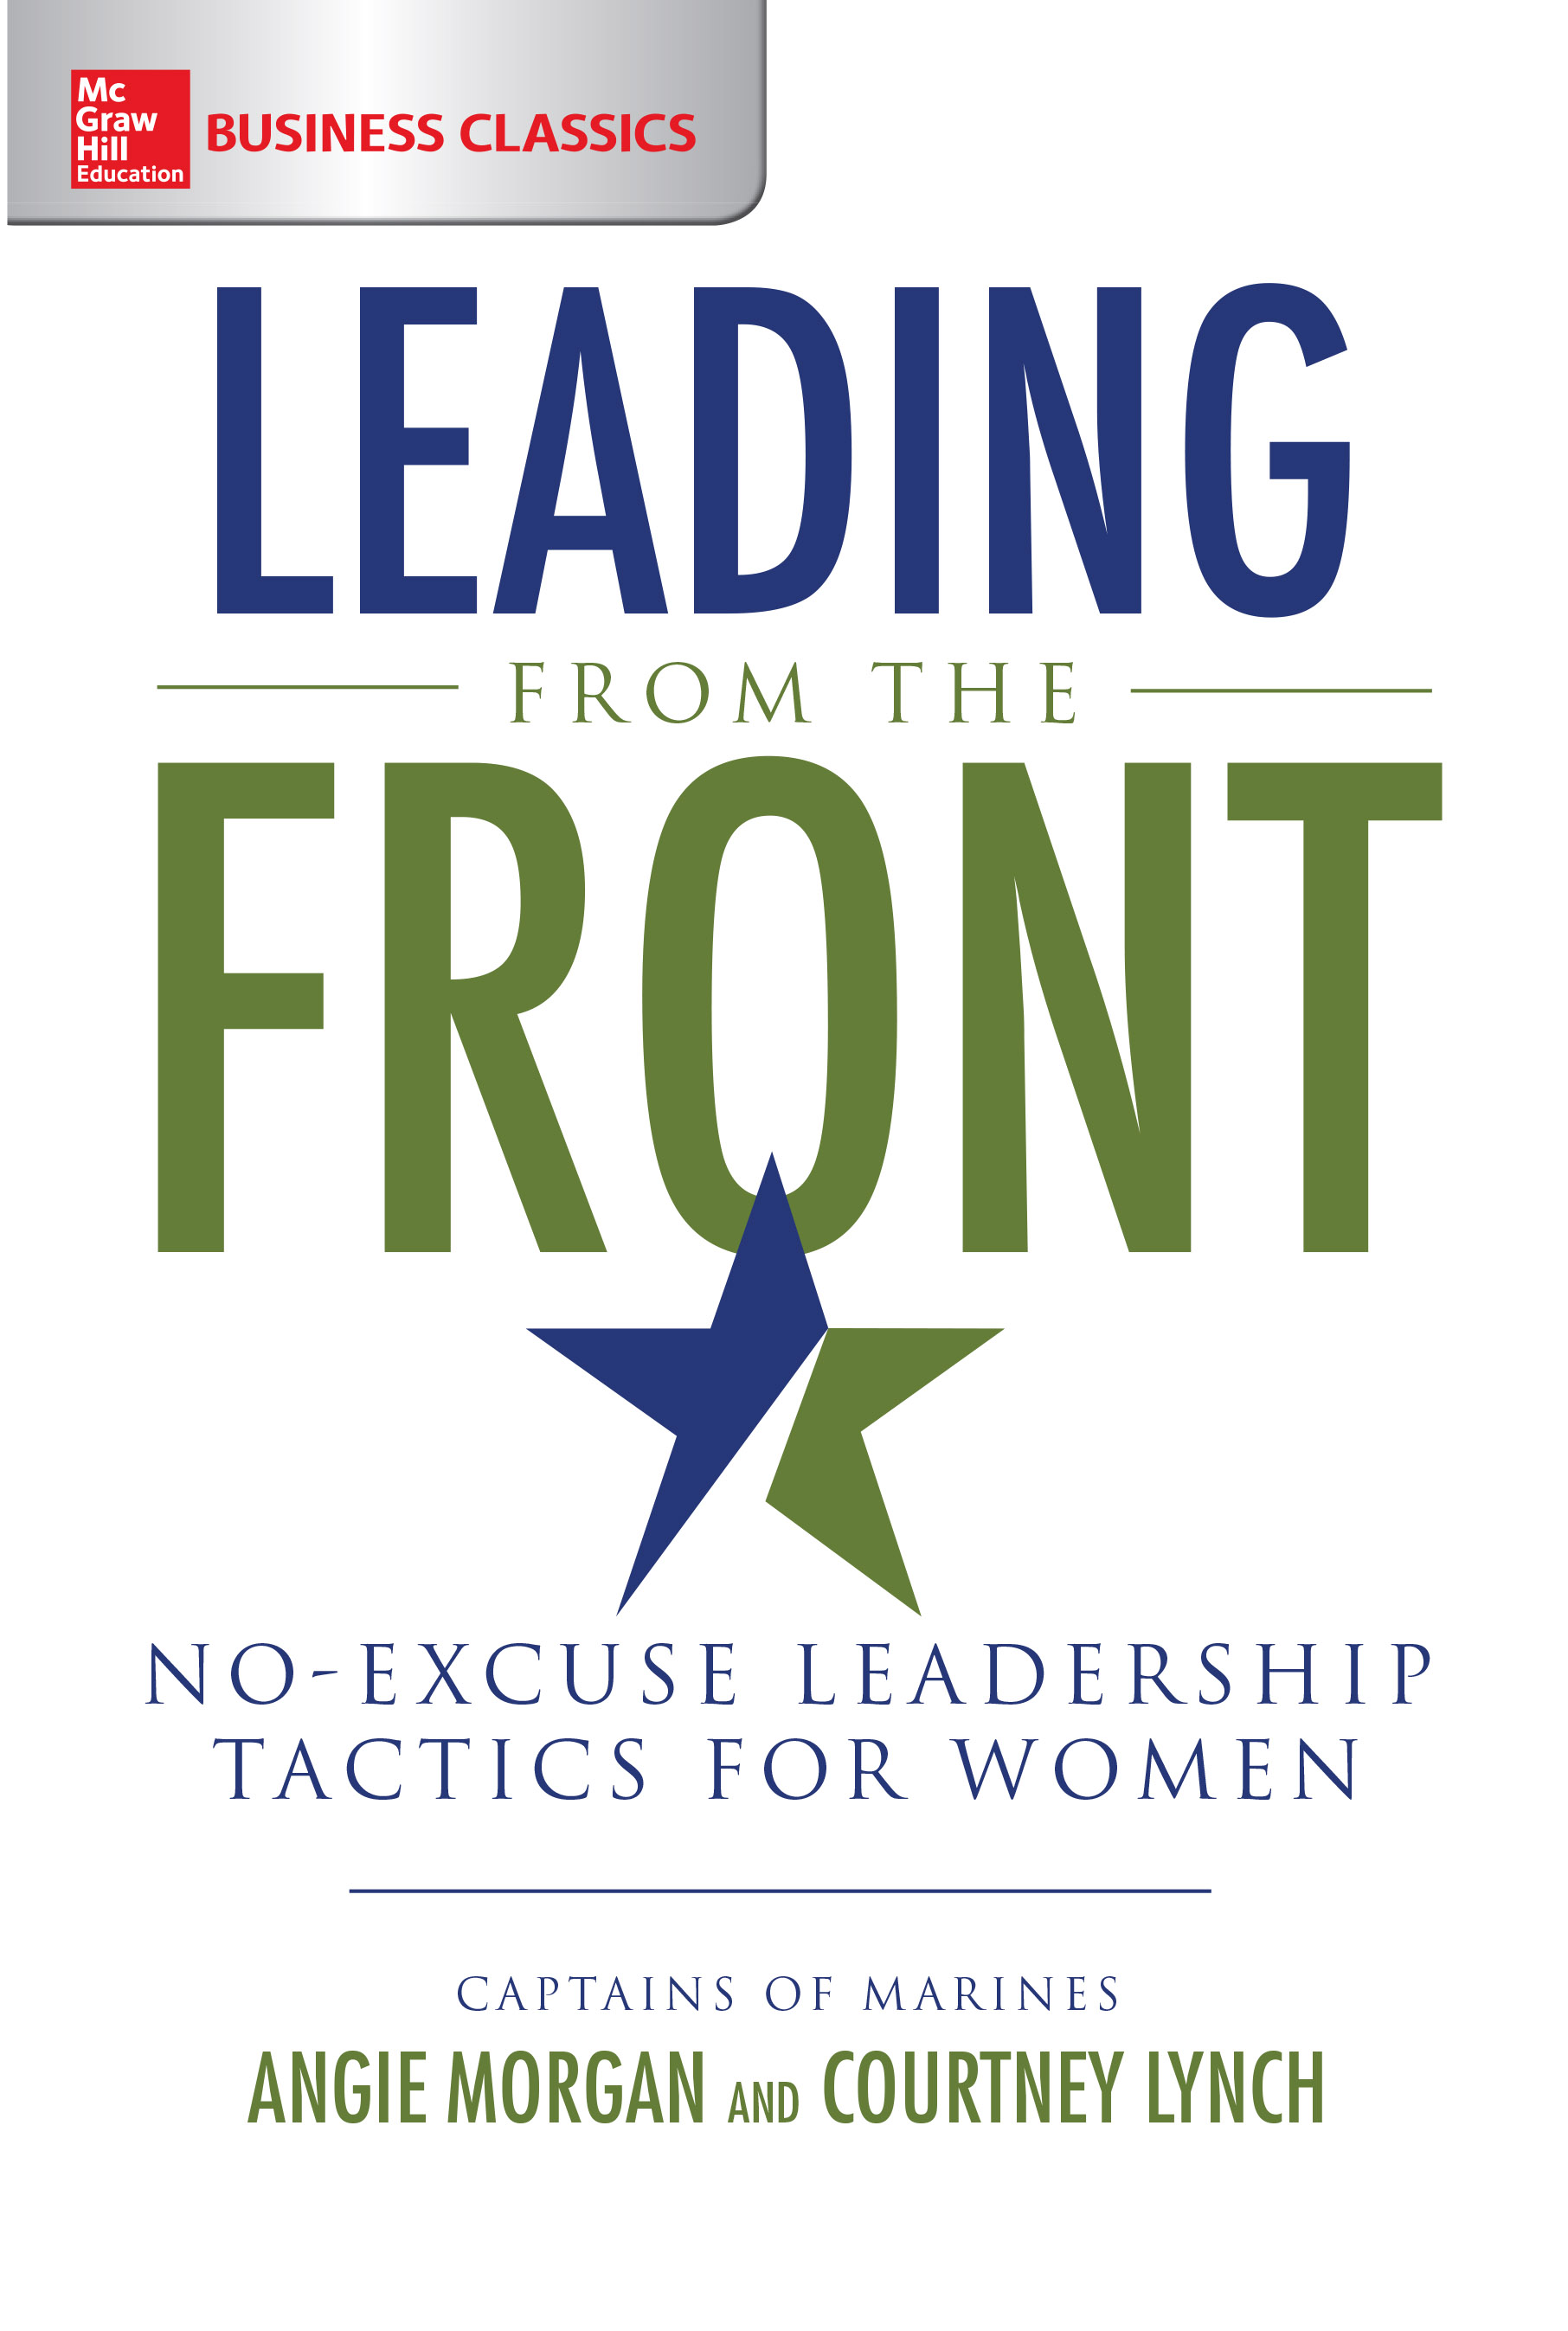 Download Ebook Leading from the Front: No-Excuse Leadership Tactics for Women by Angie Morgan Pdf